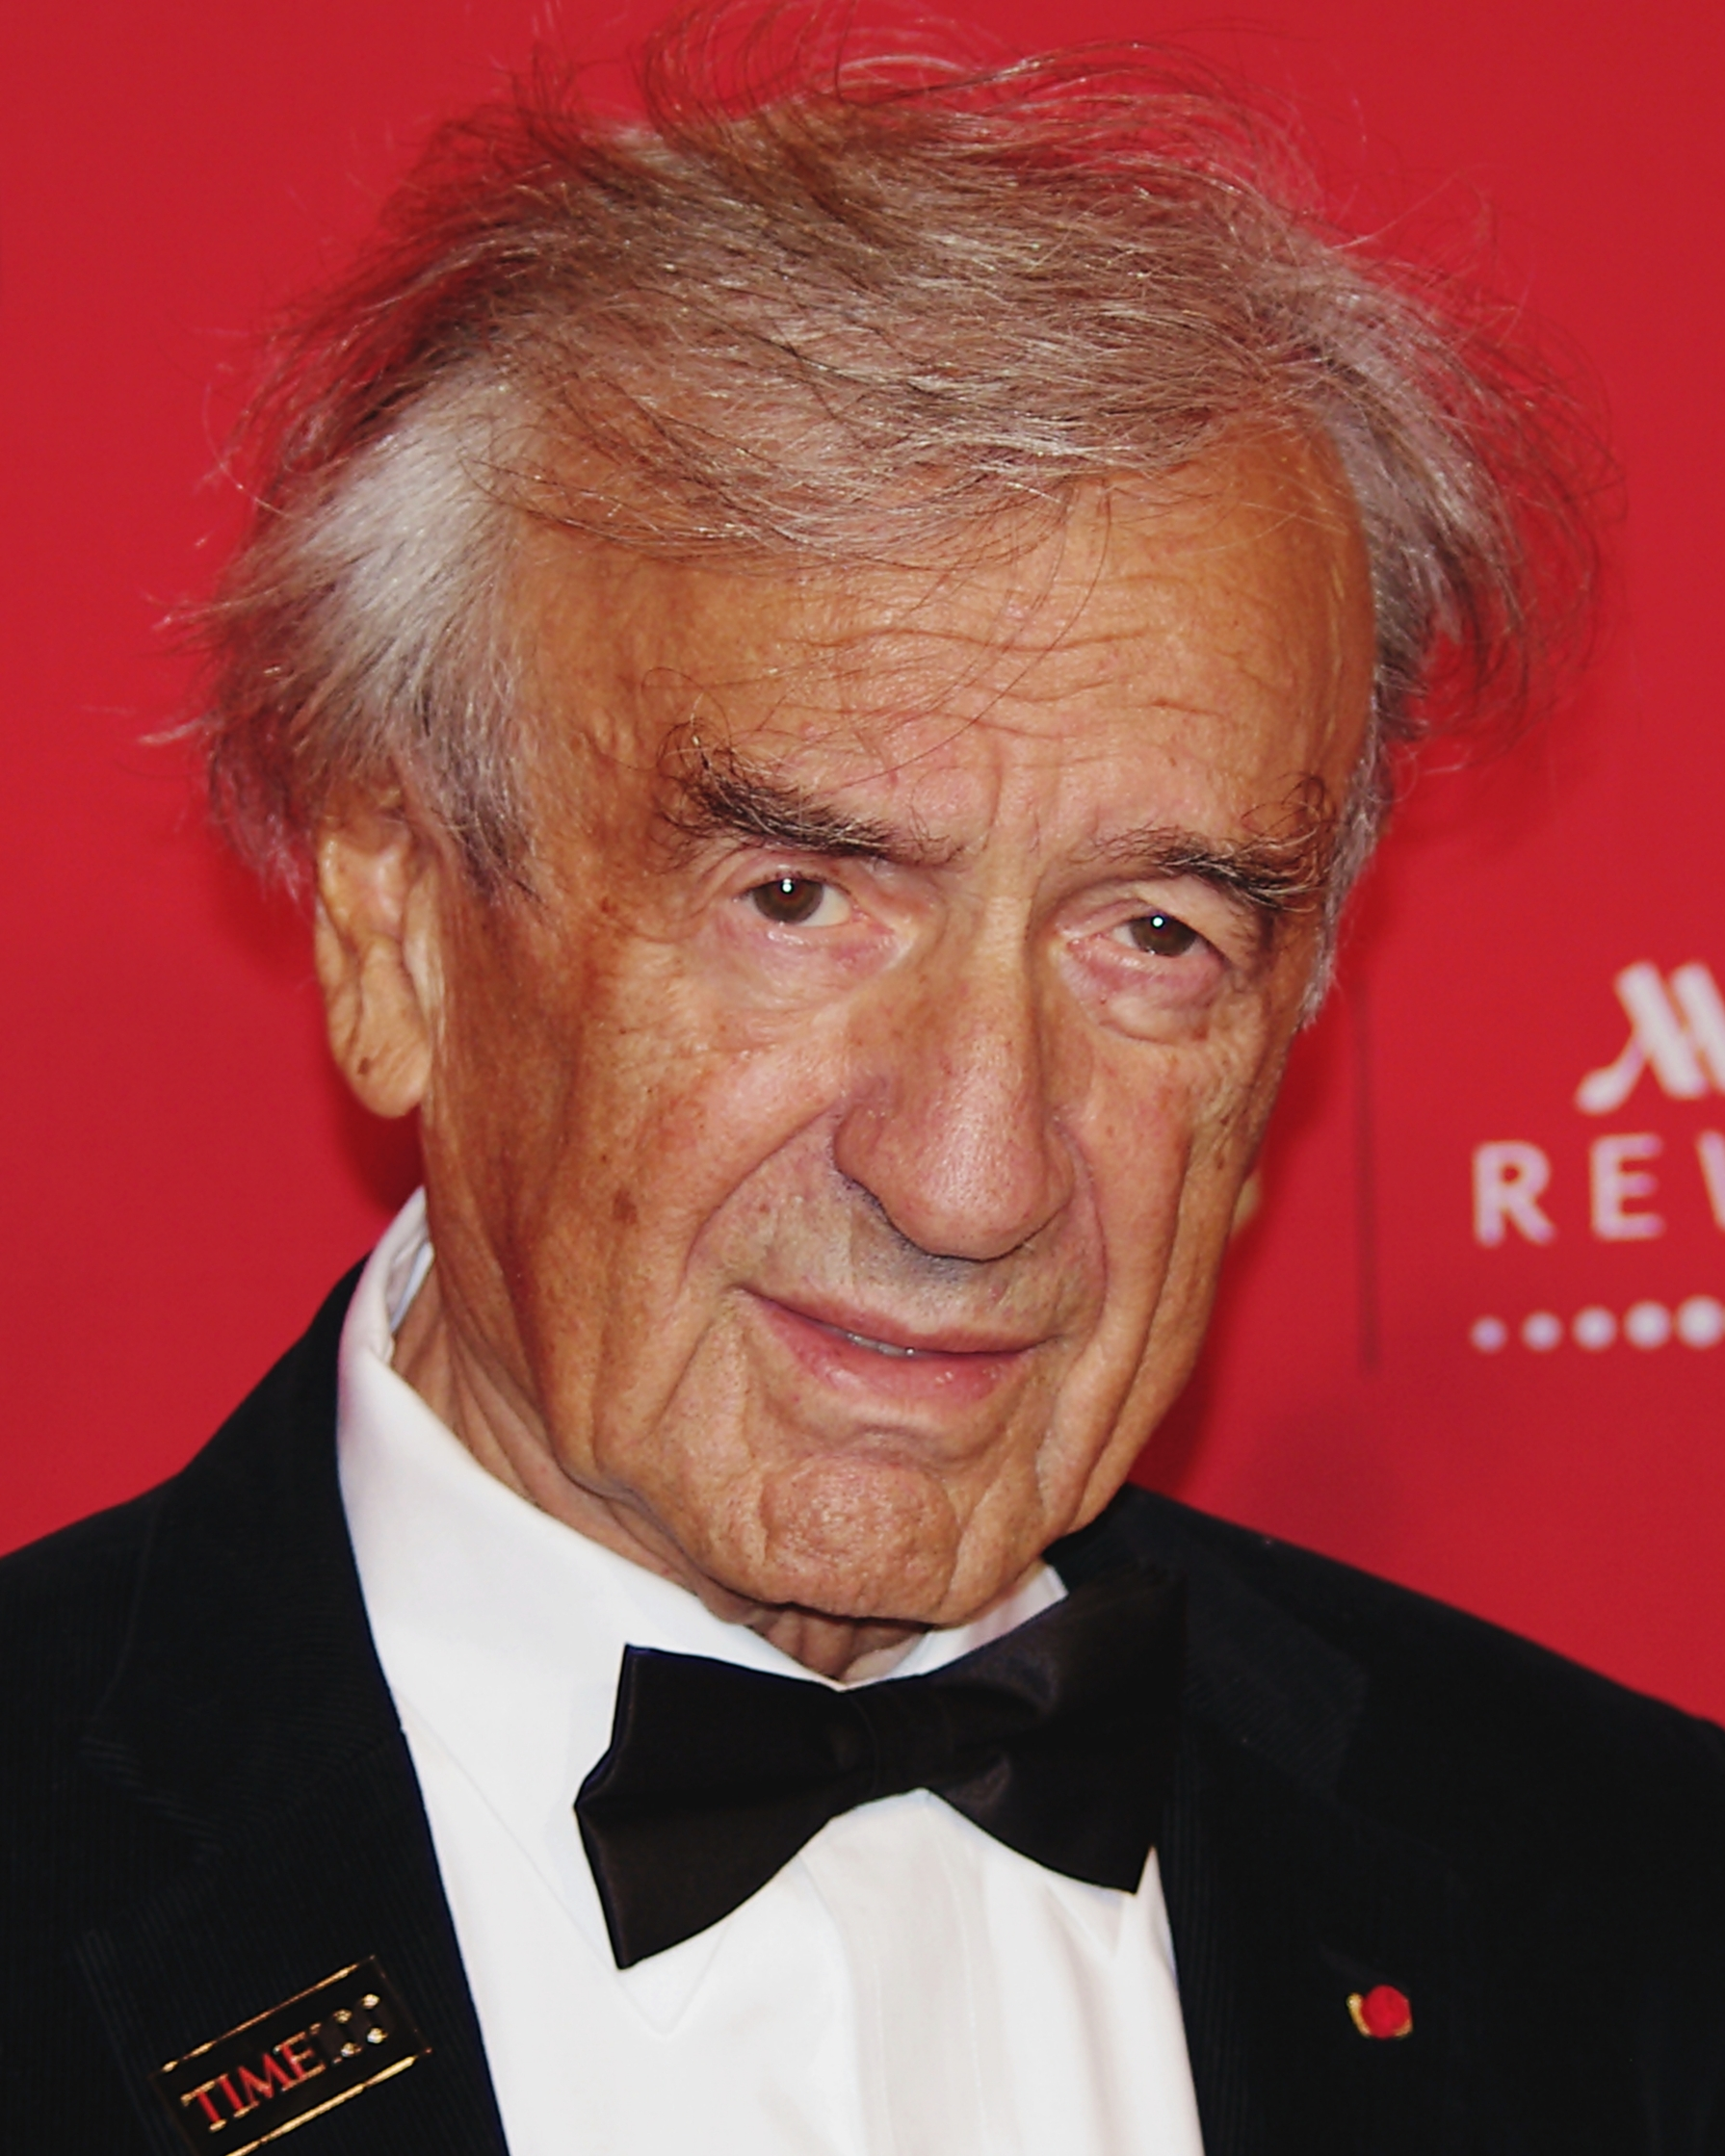 an analysis of elie wiesel as a great man as well as a humanitarian 17-5-2017 ursula hedwig meta haverbeck-wetzel, an 86-year-old german woman who was ethnically cleansed from her an analysis of elie wiesel as a great man as well as a humanitarian home following wwii,.